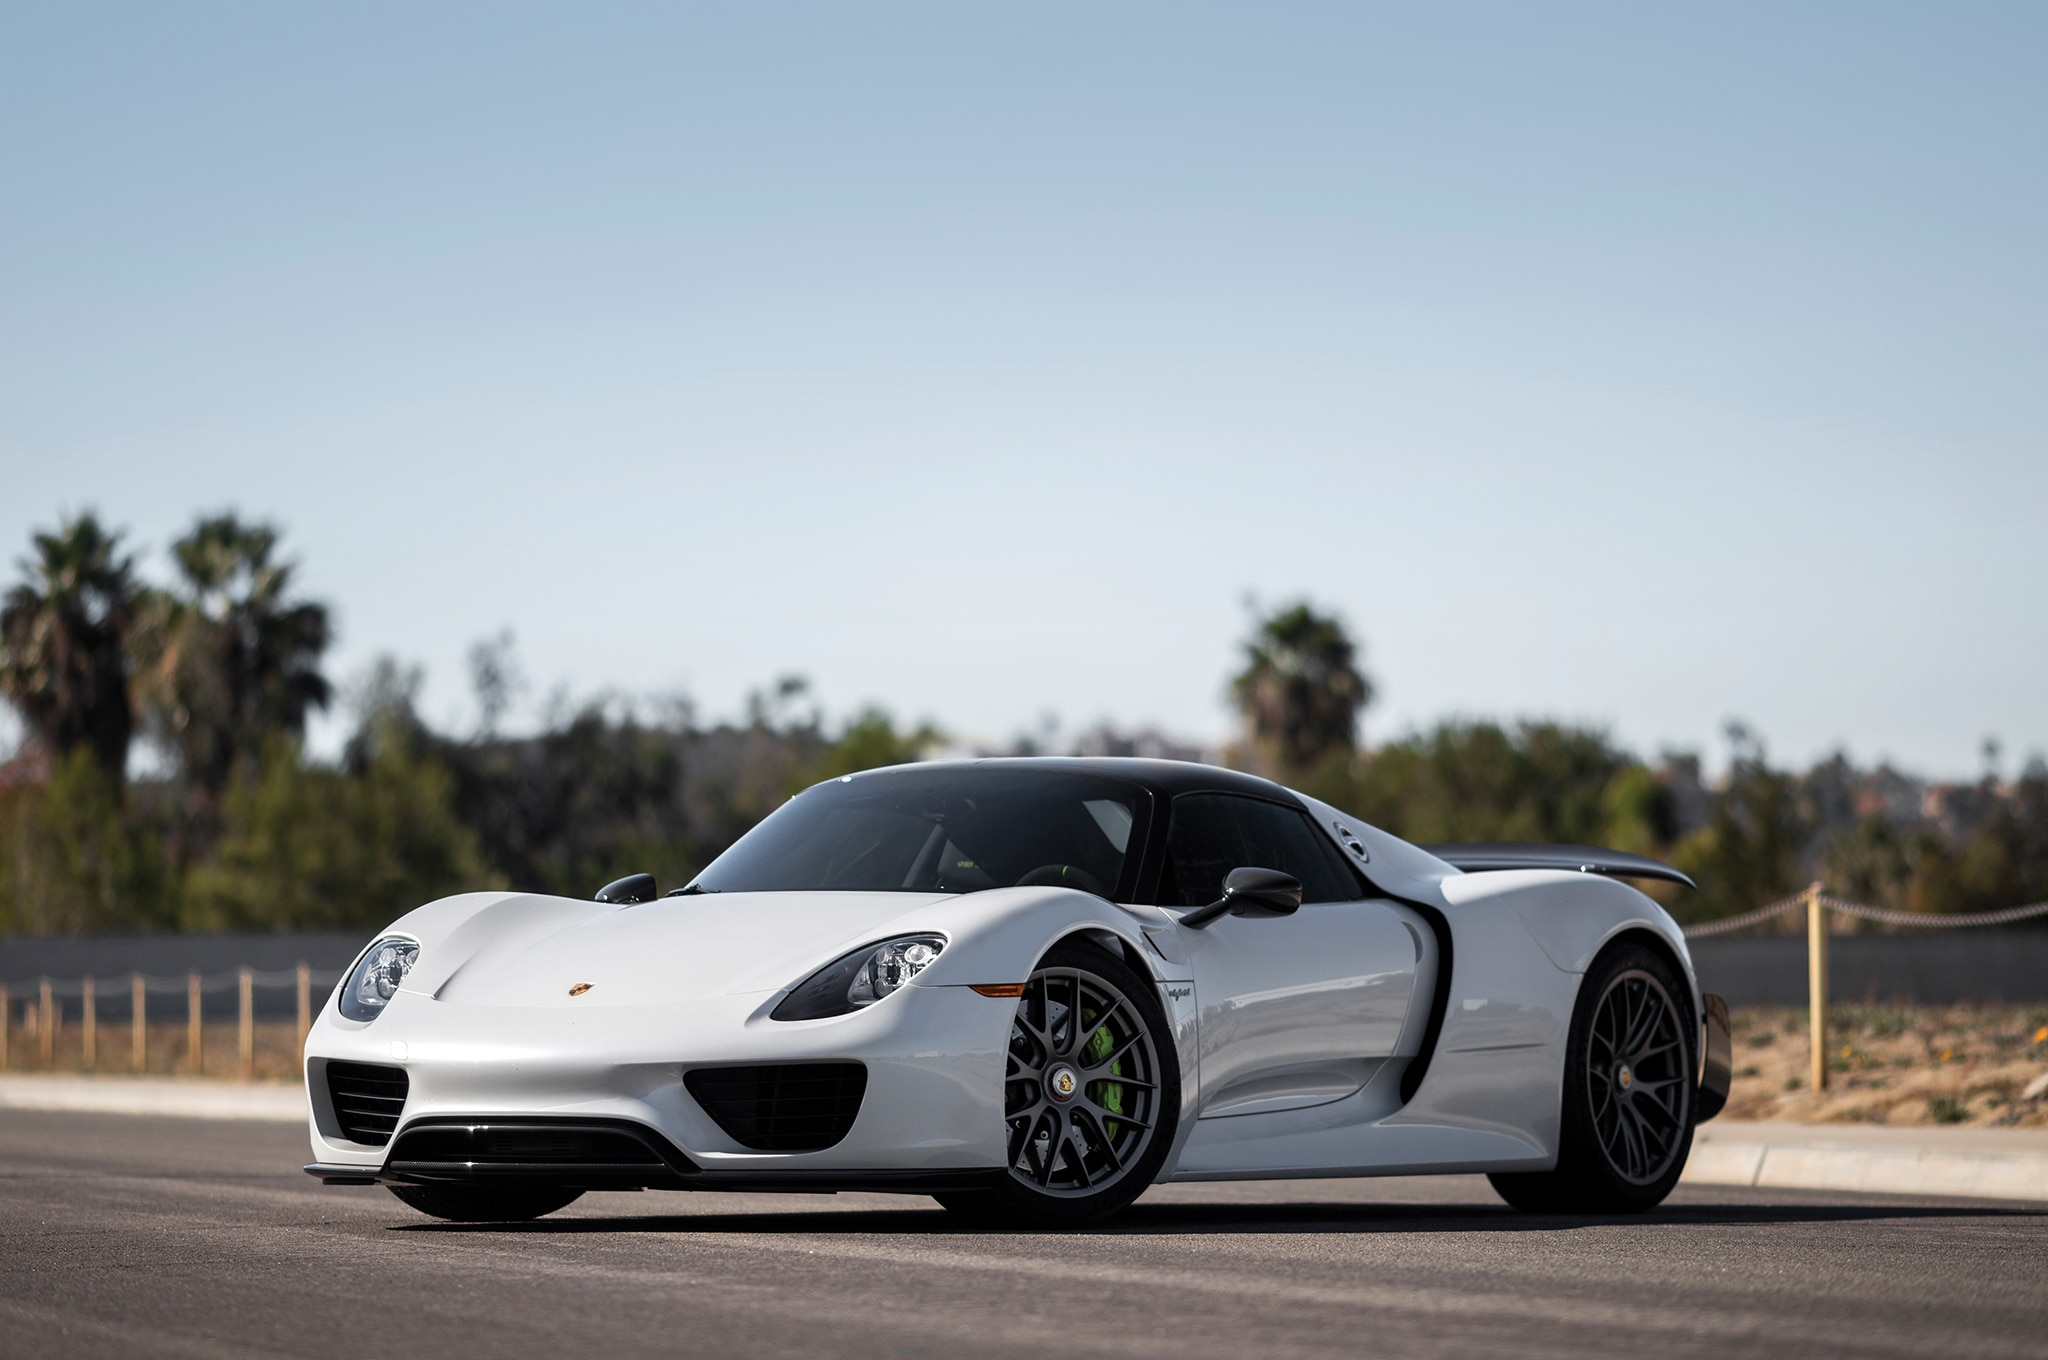 2015 Porsche 918 Spyder Scottsdale Front Three Quarters1